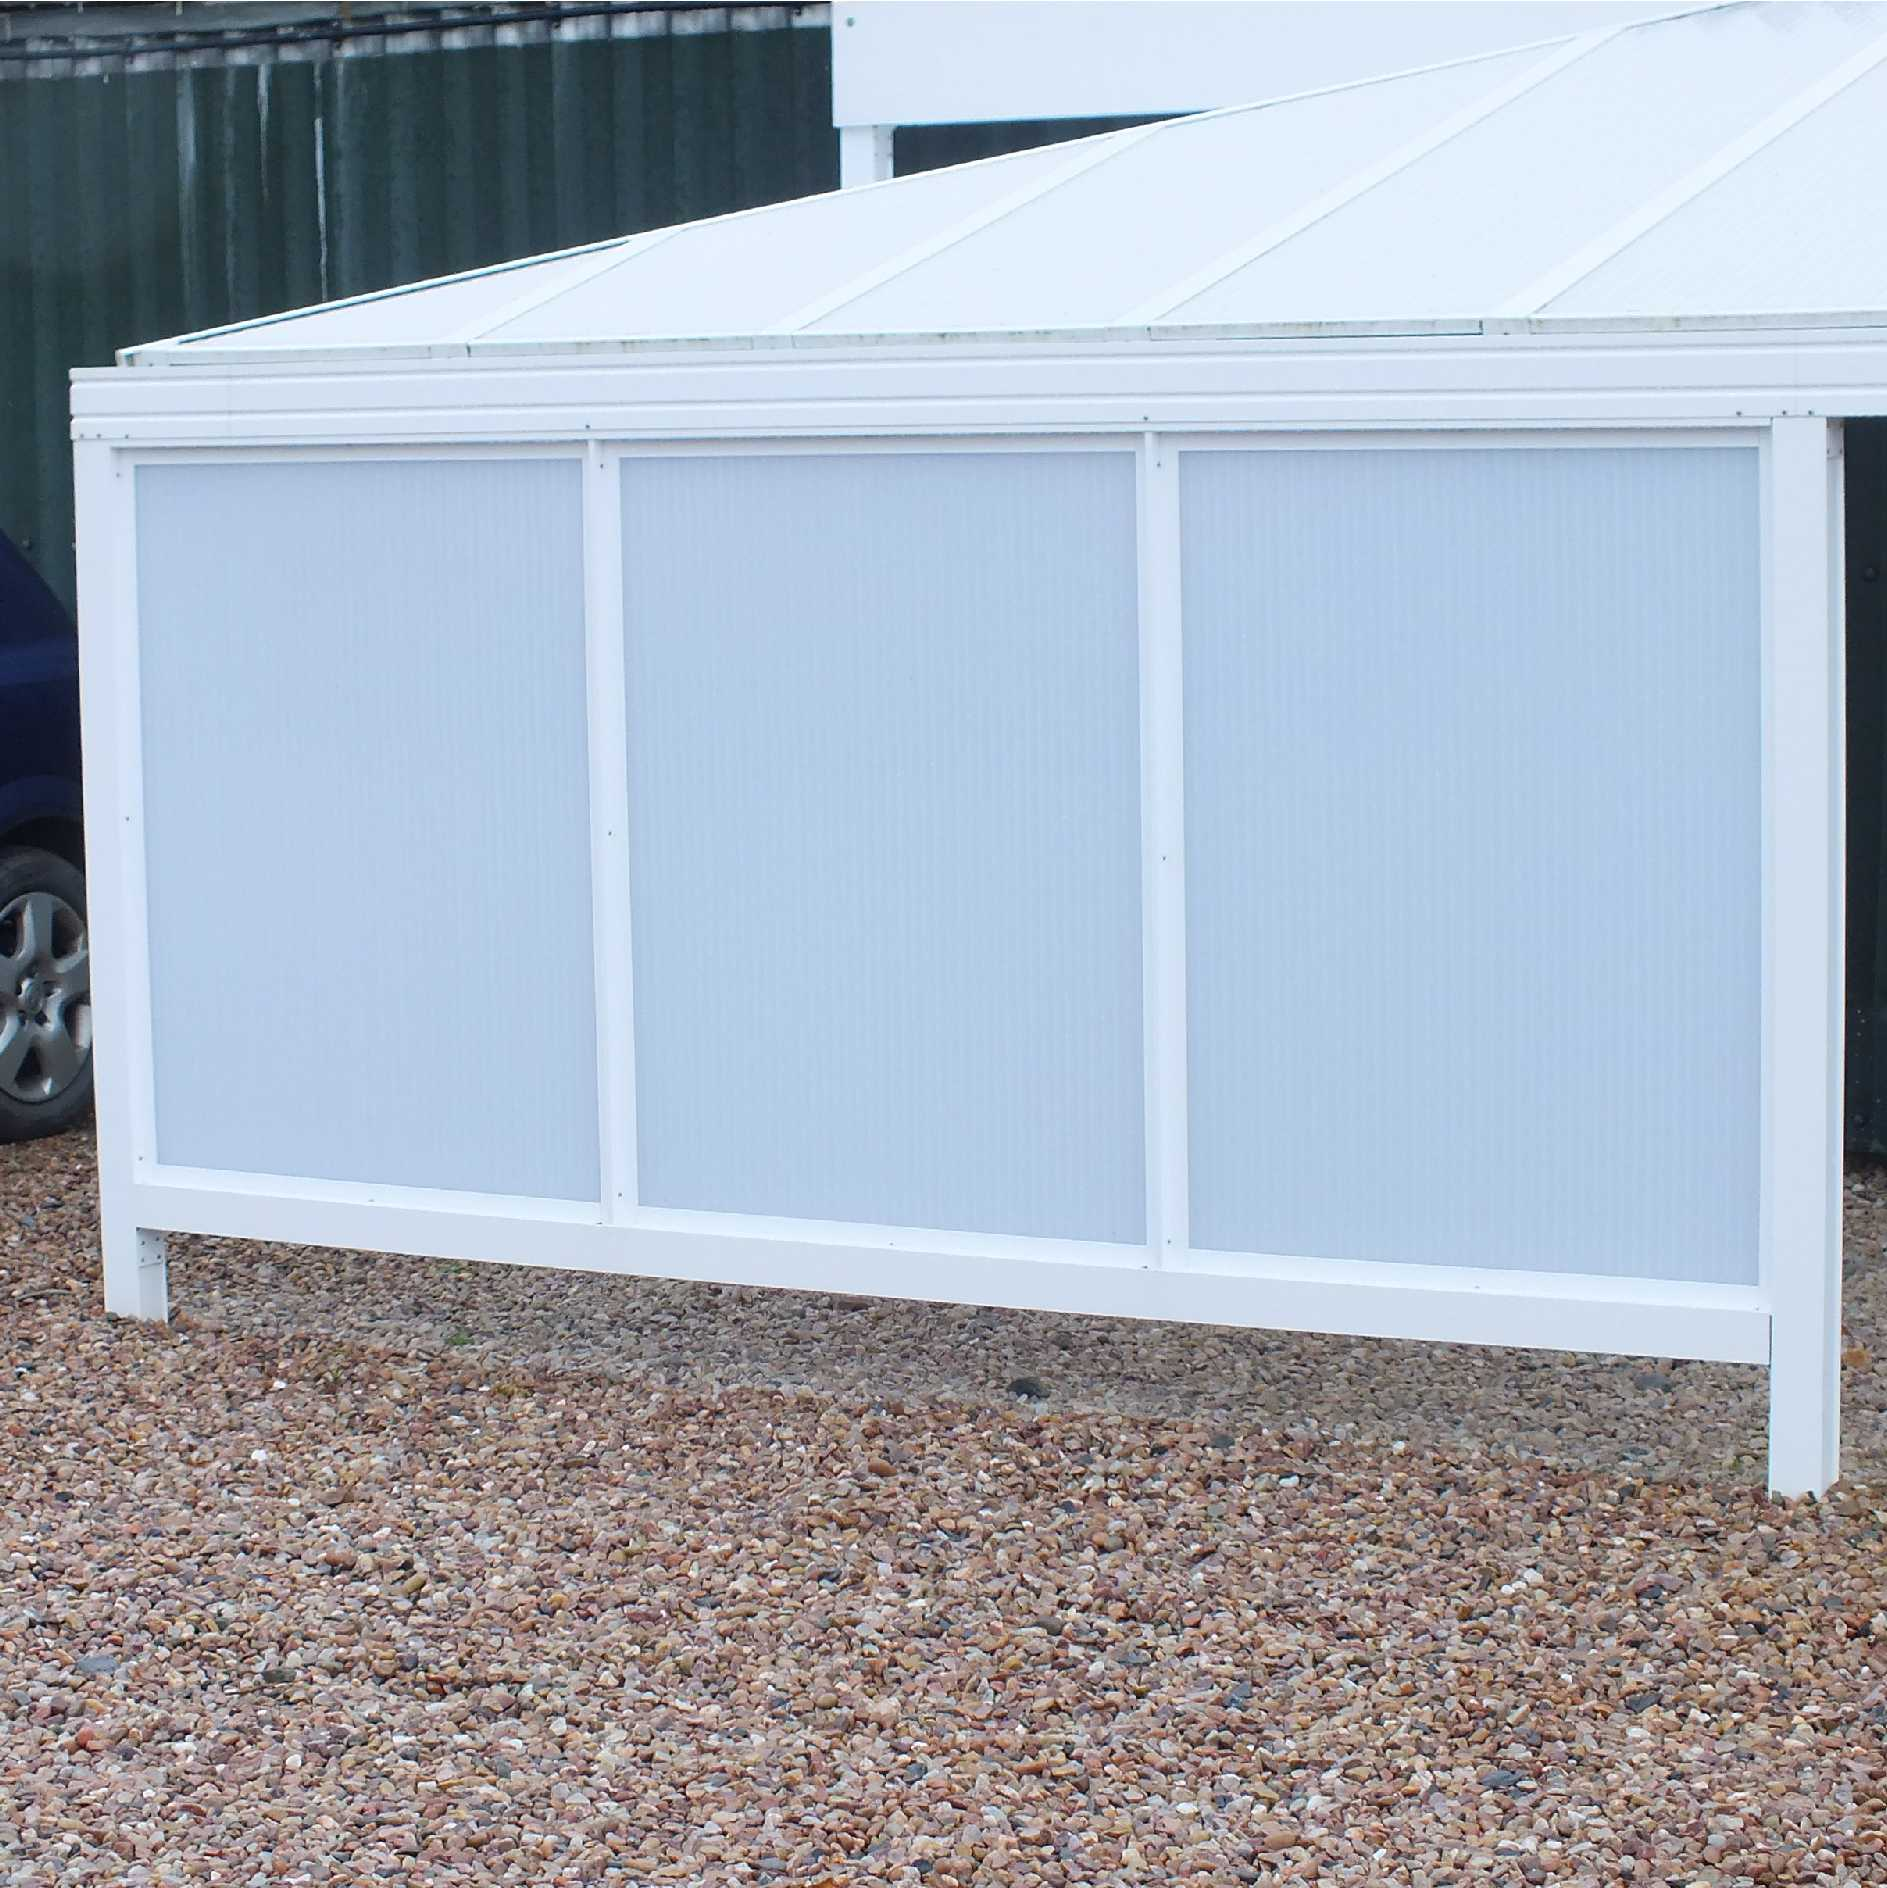 Omega Smart Canopy - UNDER EAVES In-Fill Sections (2 In-Fill Panels) for 2.1m, 3.5m, 4.2m, 6.3m Width Canopies,  16mm Polycarbonate In-Fill Panels, White Frame